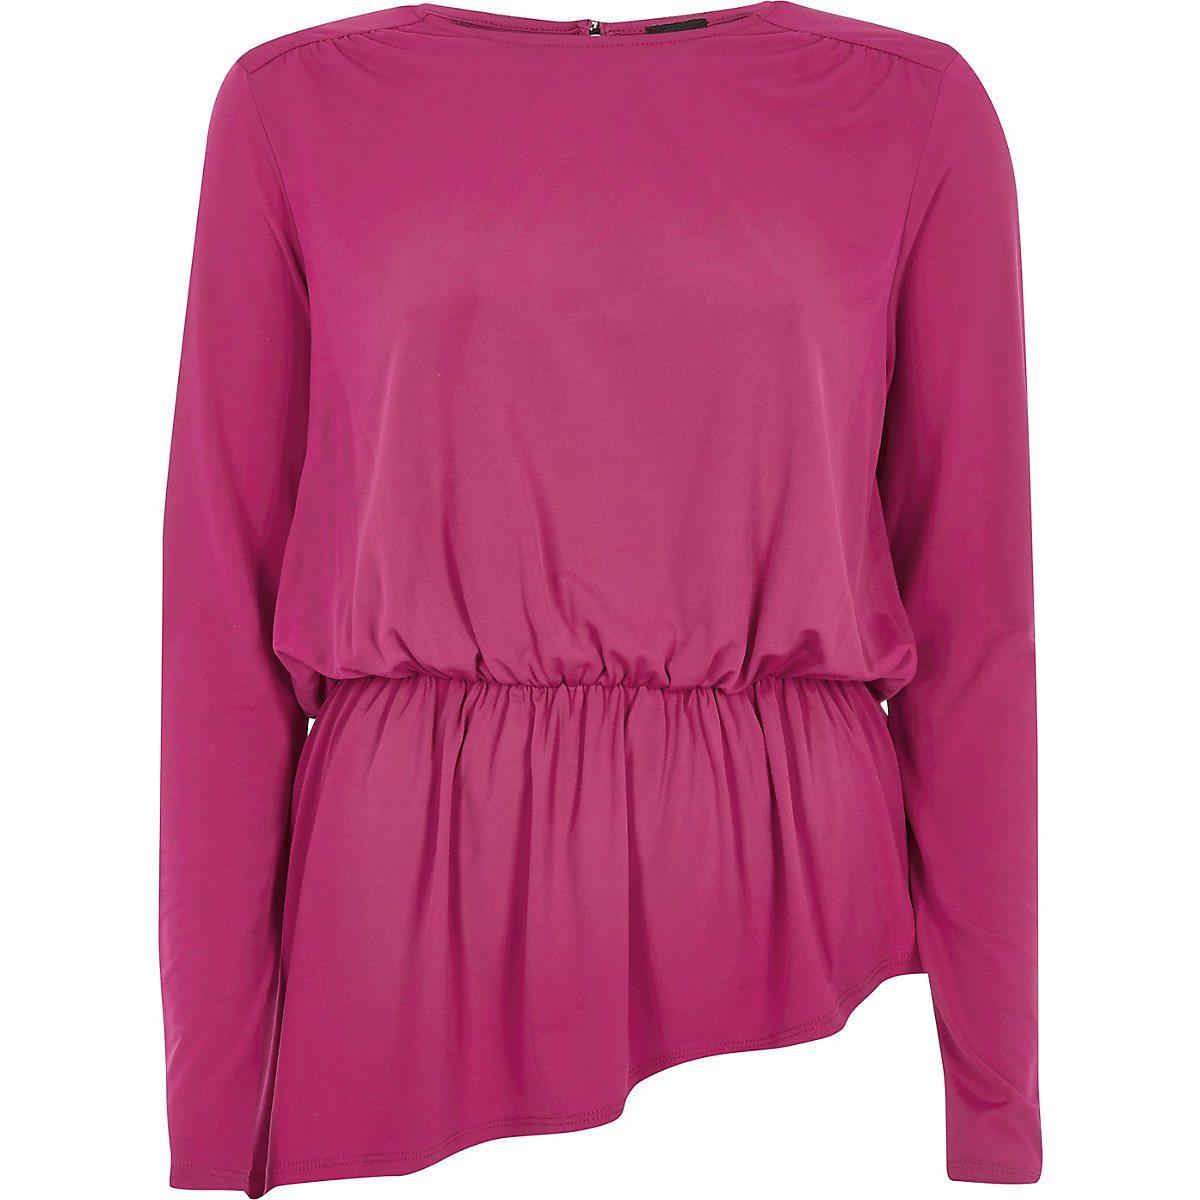 Pink power shoulder peplum hem top